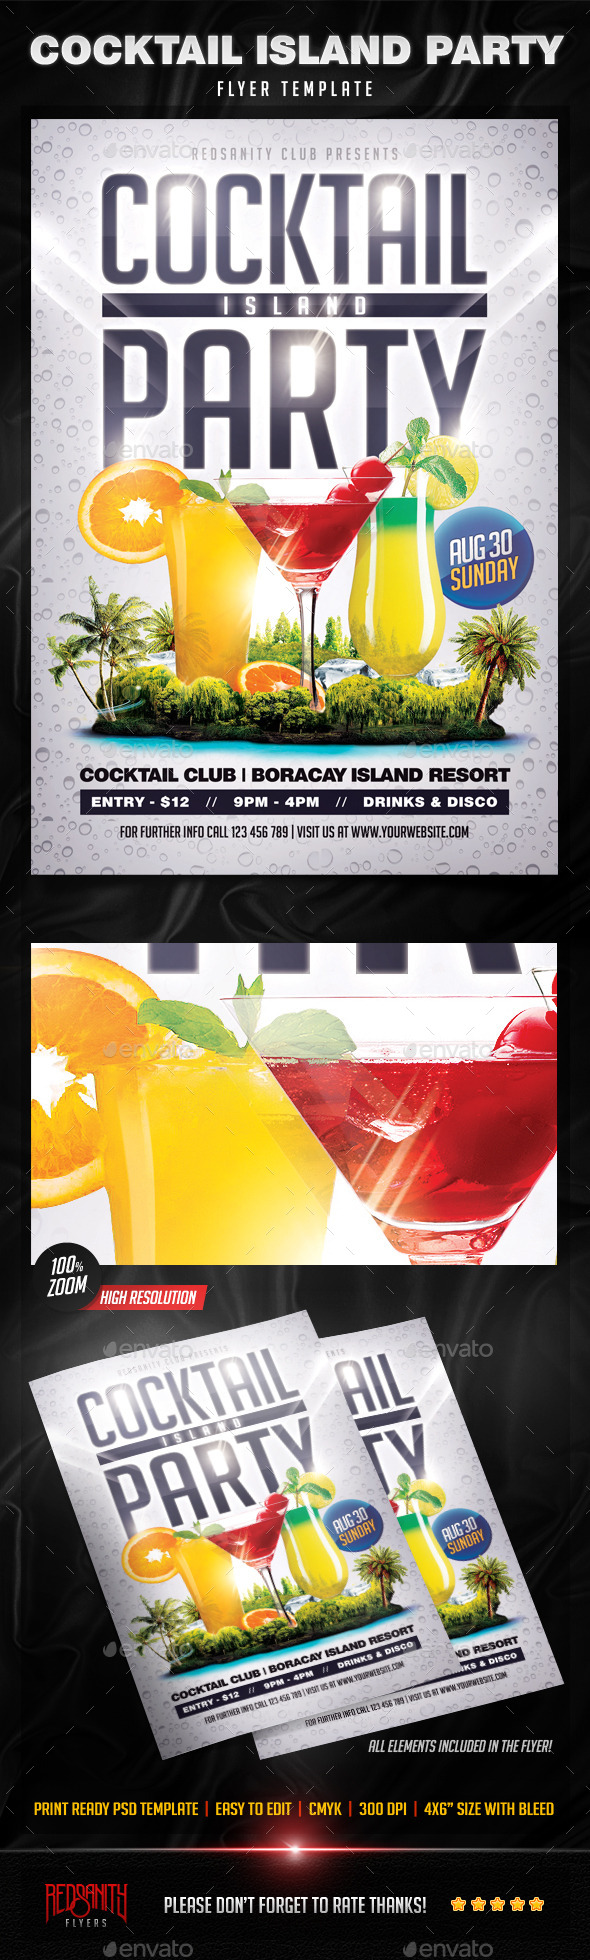 Cocktail Island Party Flyer